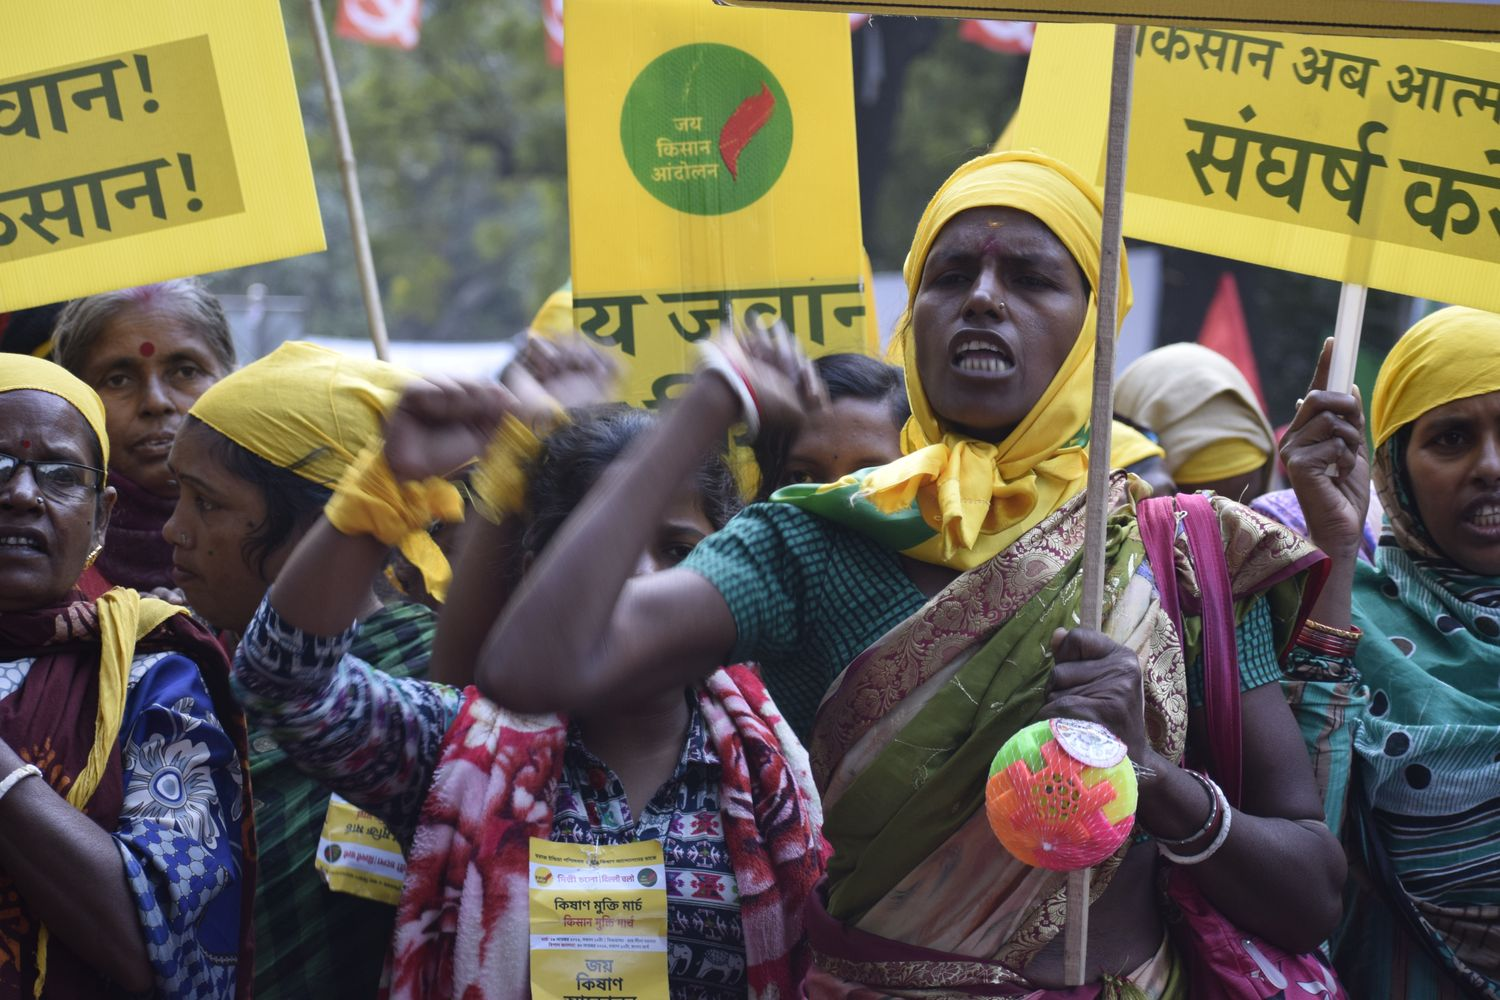 When Will Our 'Achche Din' Arrive, Ask Aggrieved Farmers At Kisan Mukti March